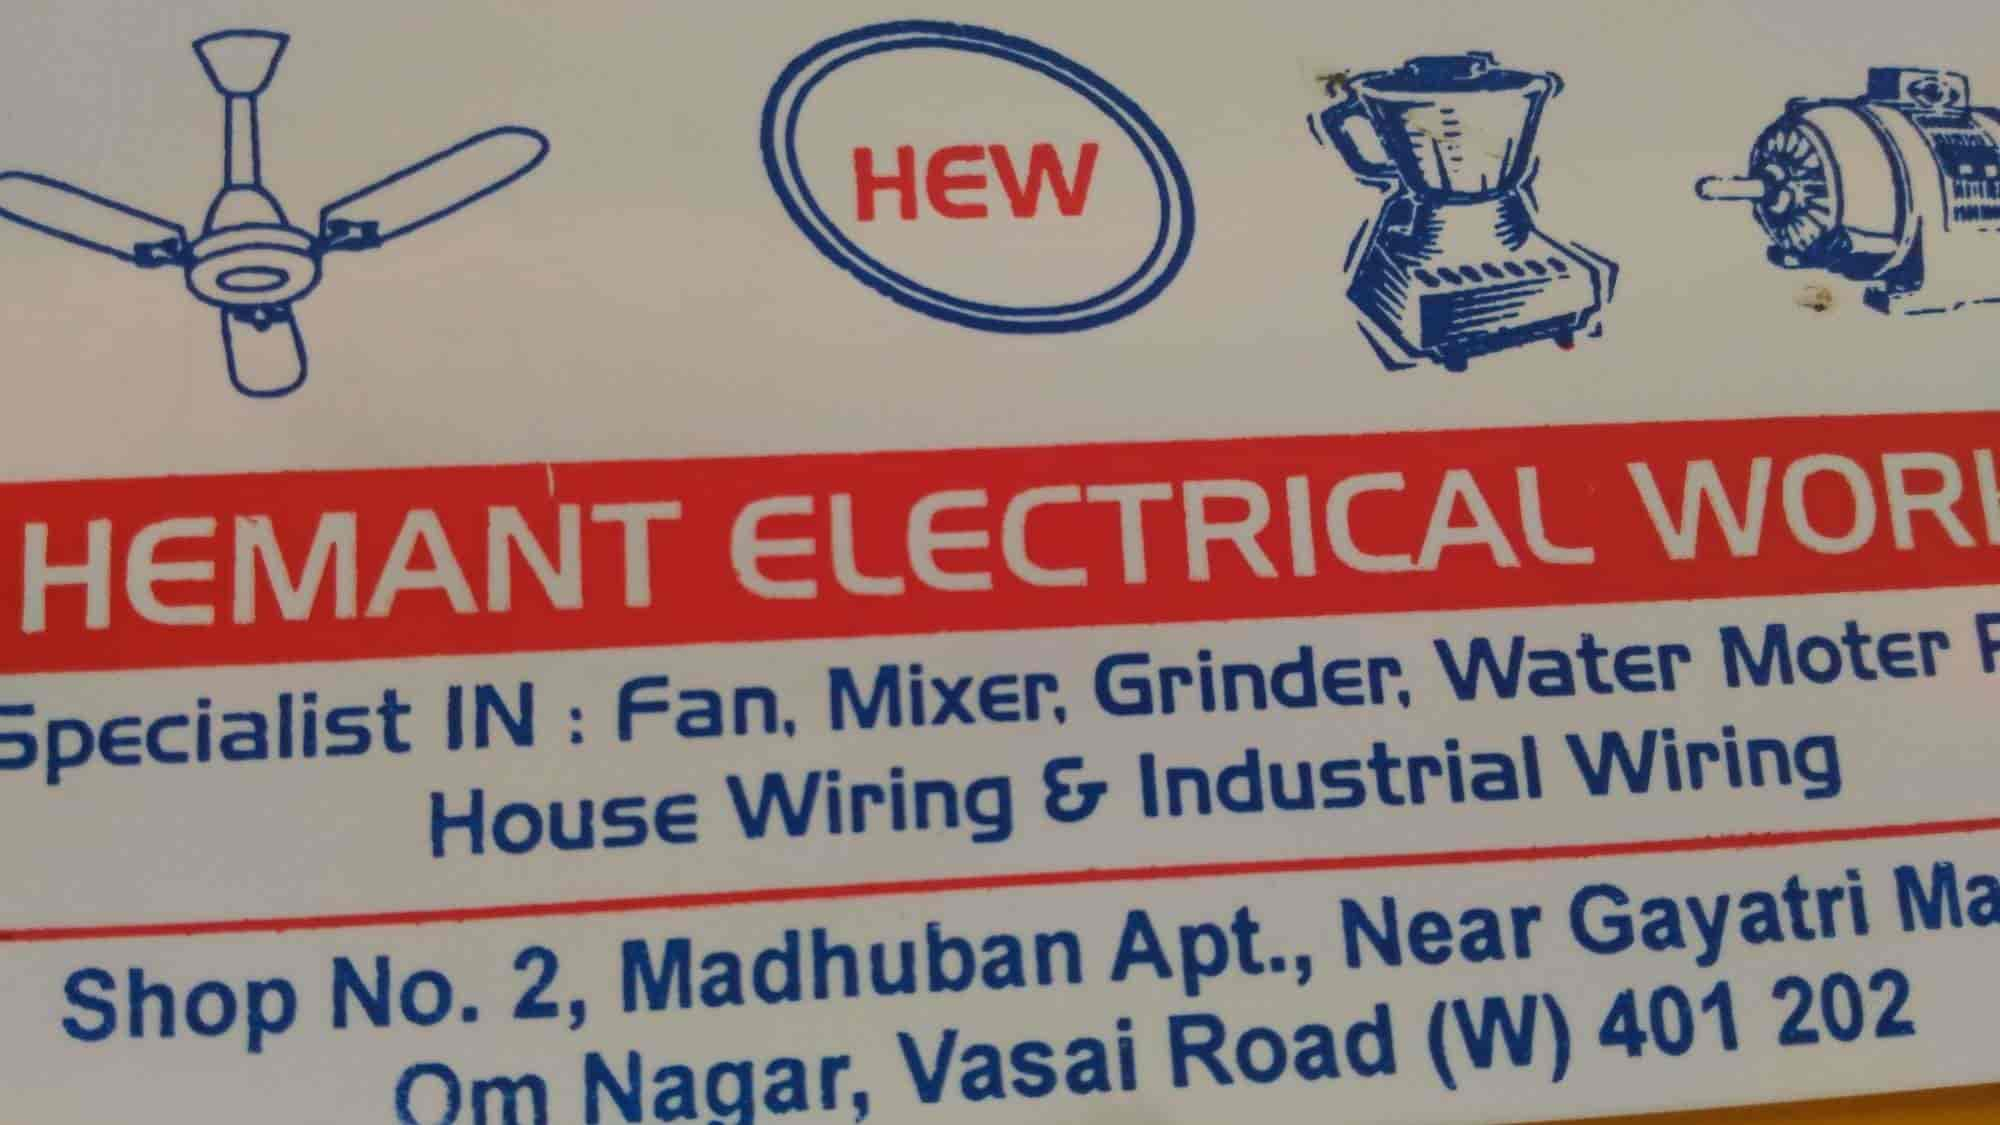 Hemant Electrical Works Closed Down In Vasai West Mumbai Justdial